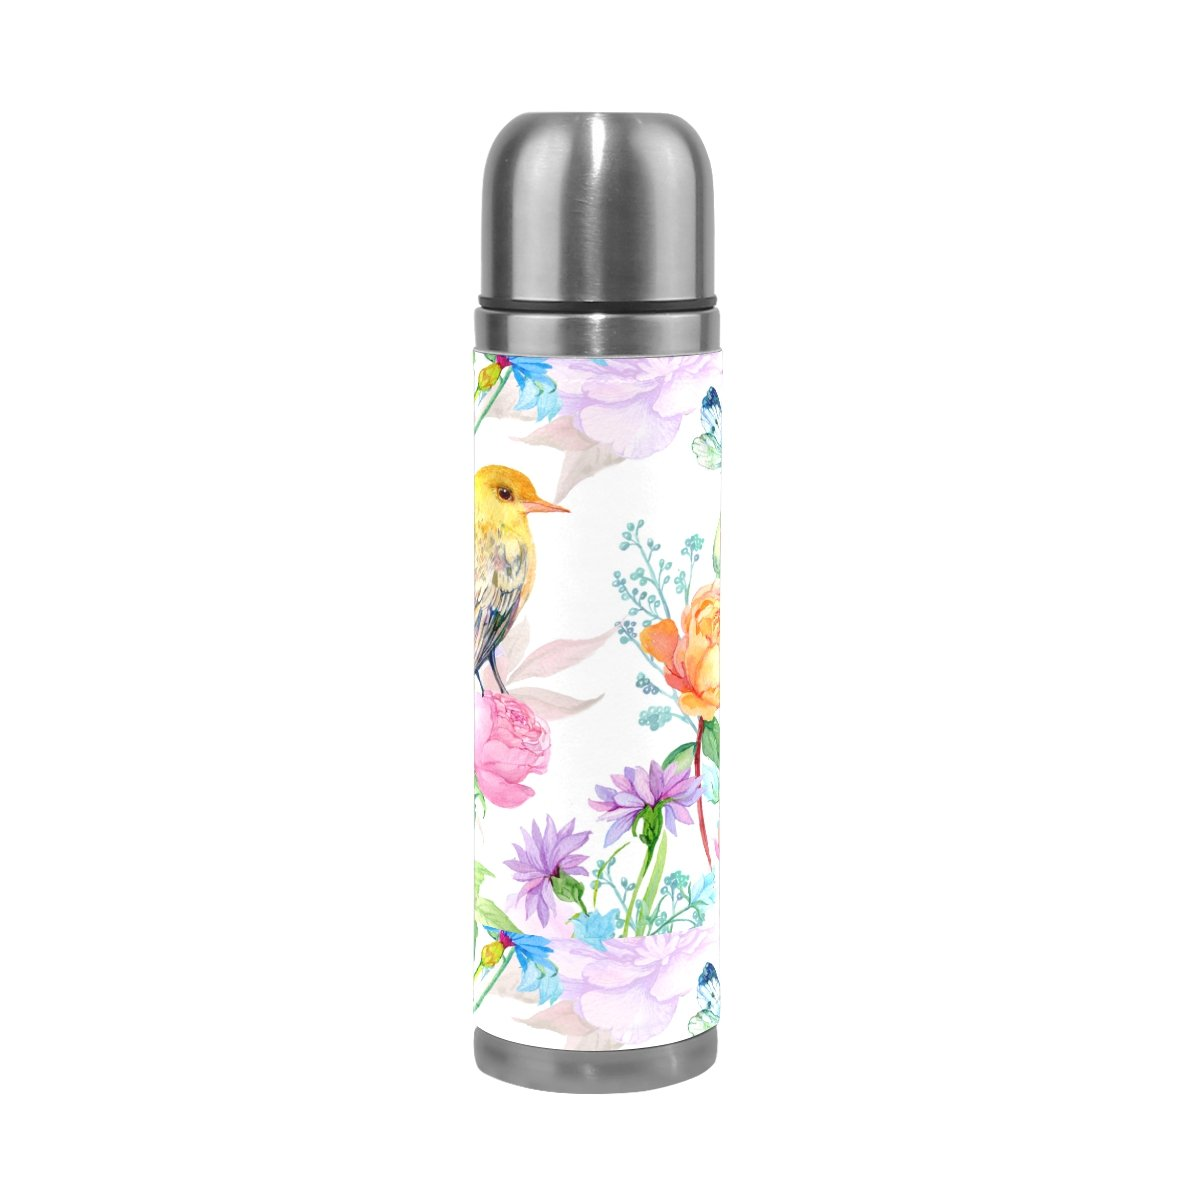 a4eba410c9 Amazon.com : My Little Nest Vacuum Insulated Water Bottle Floral Roses Bird  Butterfly Stainless Steel Travel Mug Thermos Flask 500ML : Sports & Outdoors